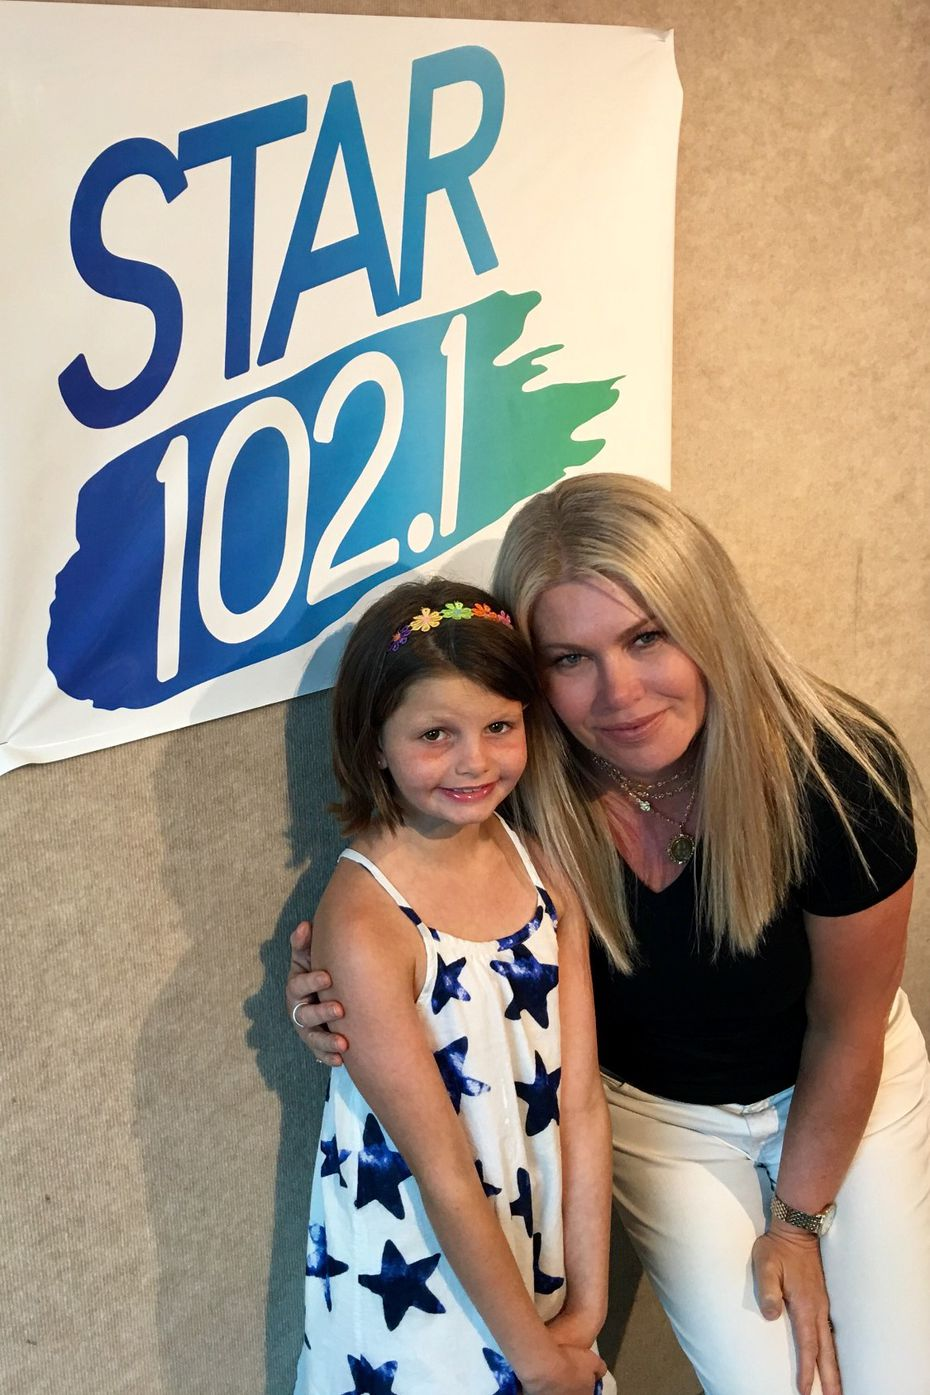 Leigh Ann Adam, the morning host of Star 102.1, heard about Hallie Barnard's struggle with DBA about a month ago. She planned a bone marrow swab drive with the station and Hallie's Heroes to try to find a bone marrow match to save Hallie's life.